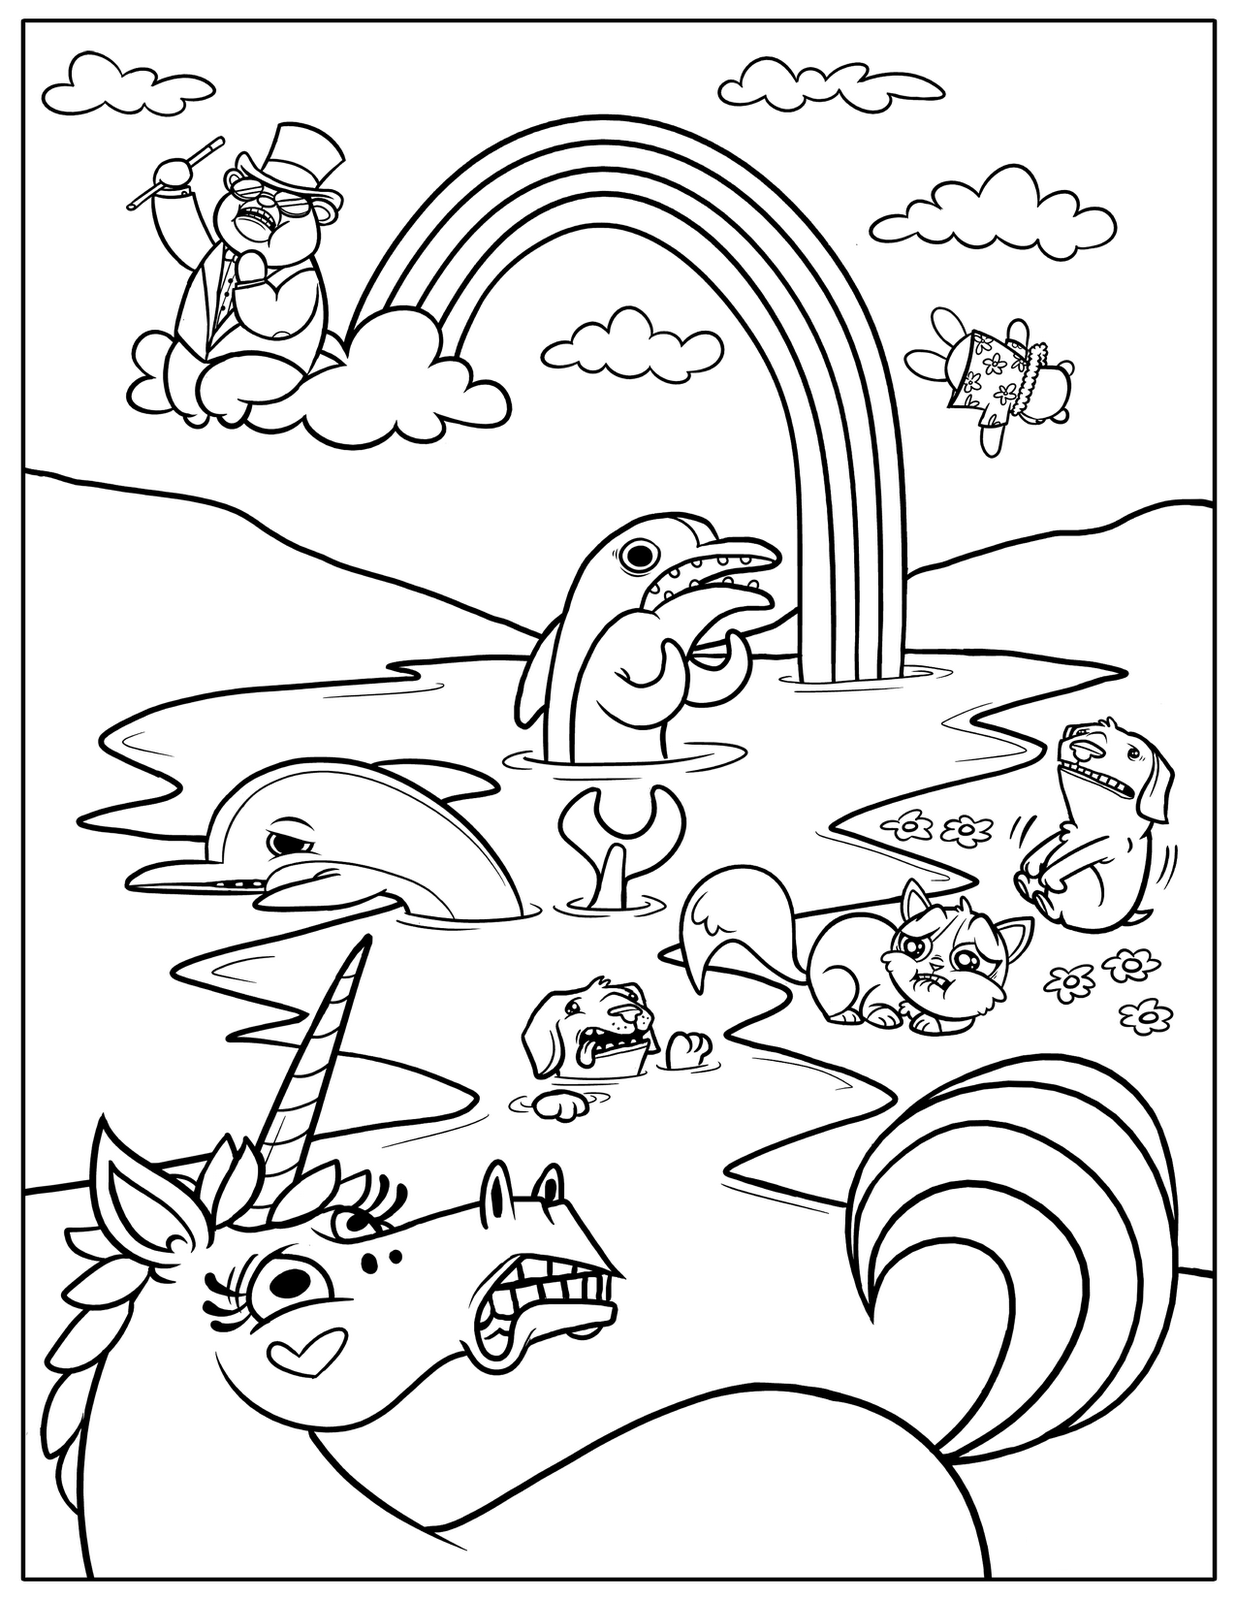 rainbow coloring pages for kid - photo#32